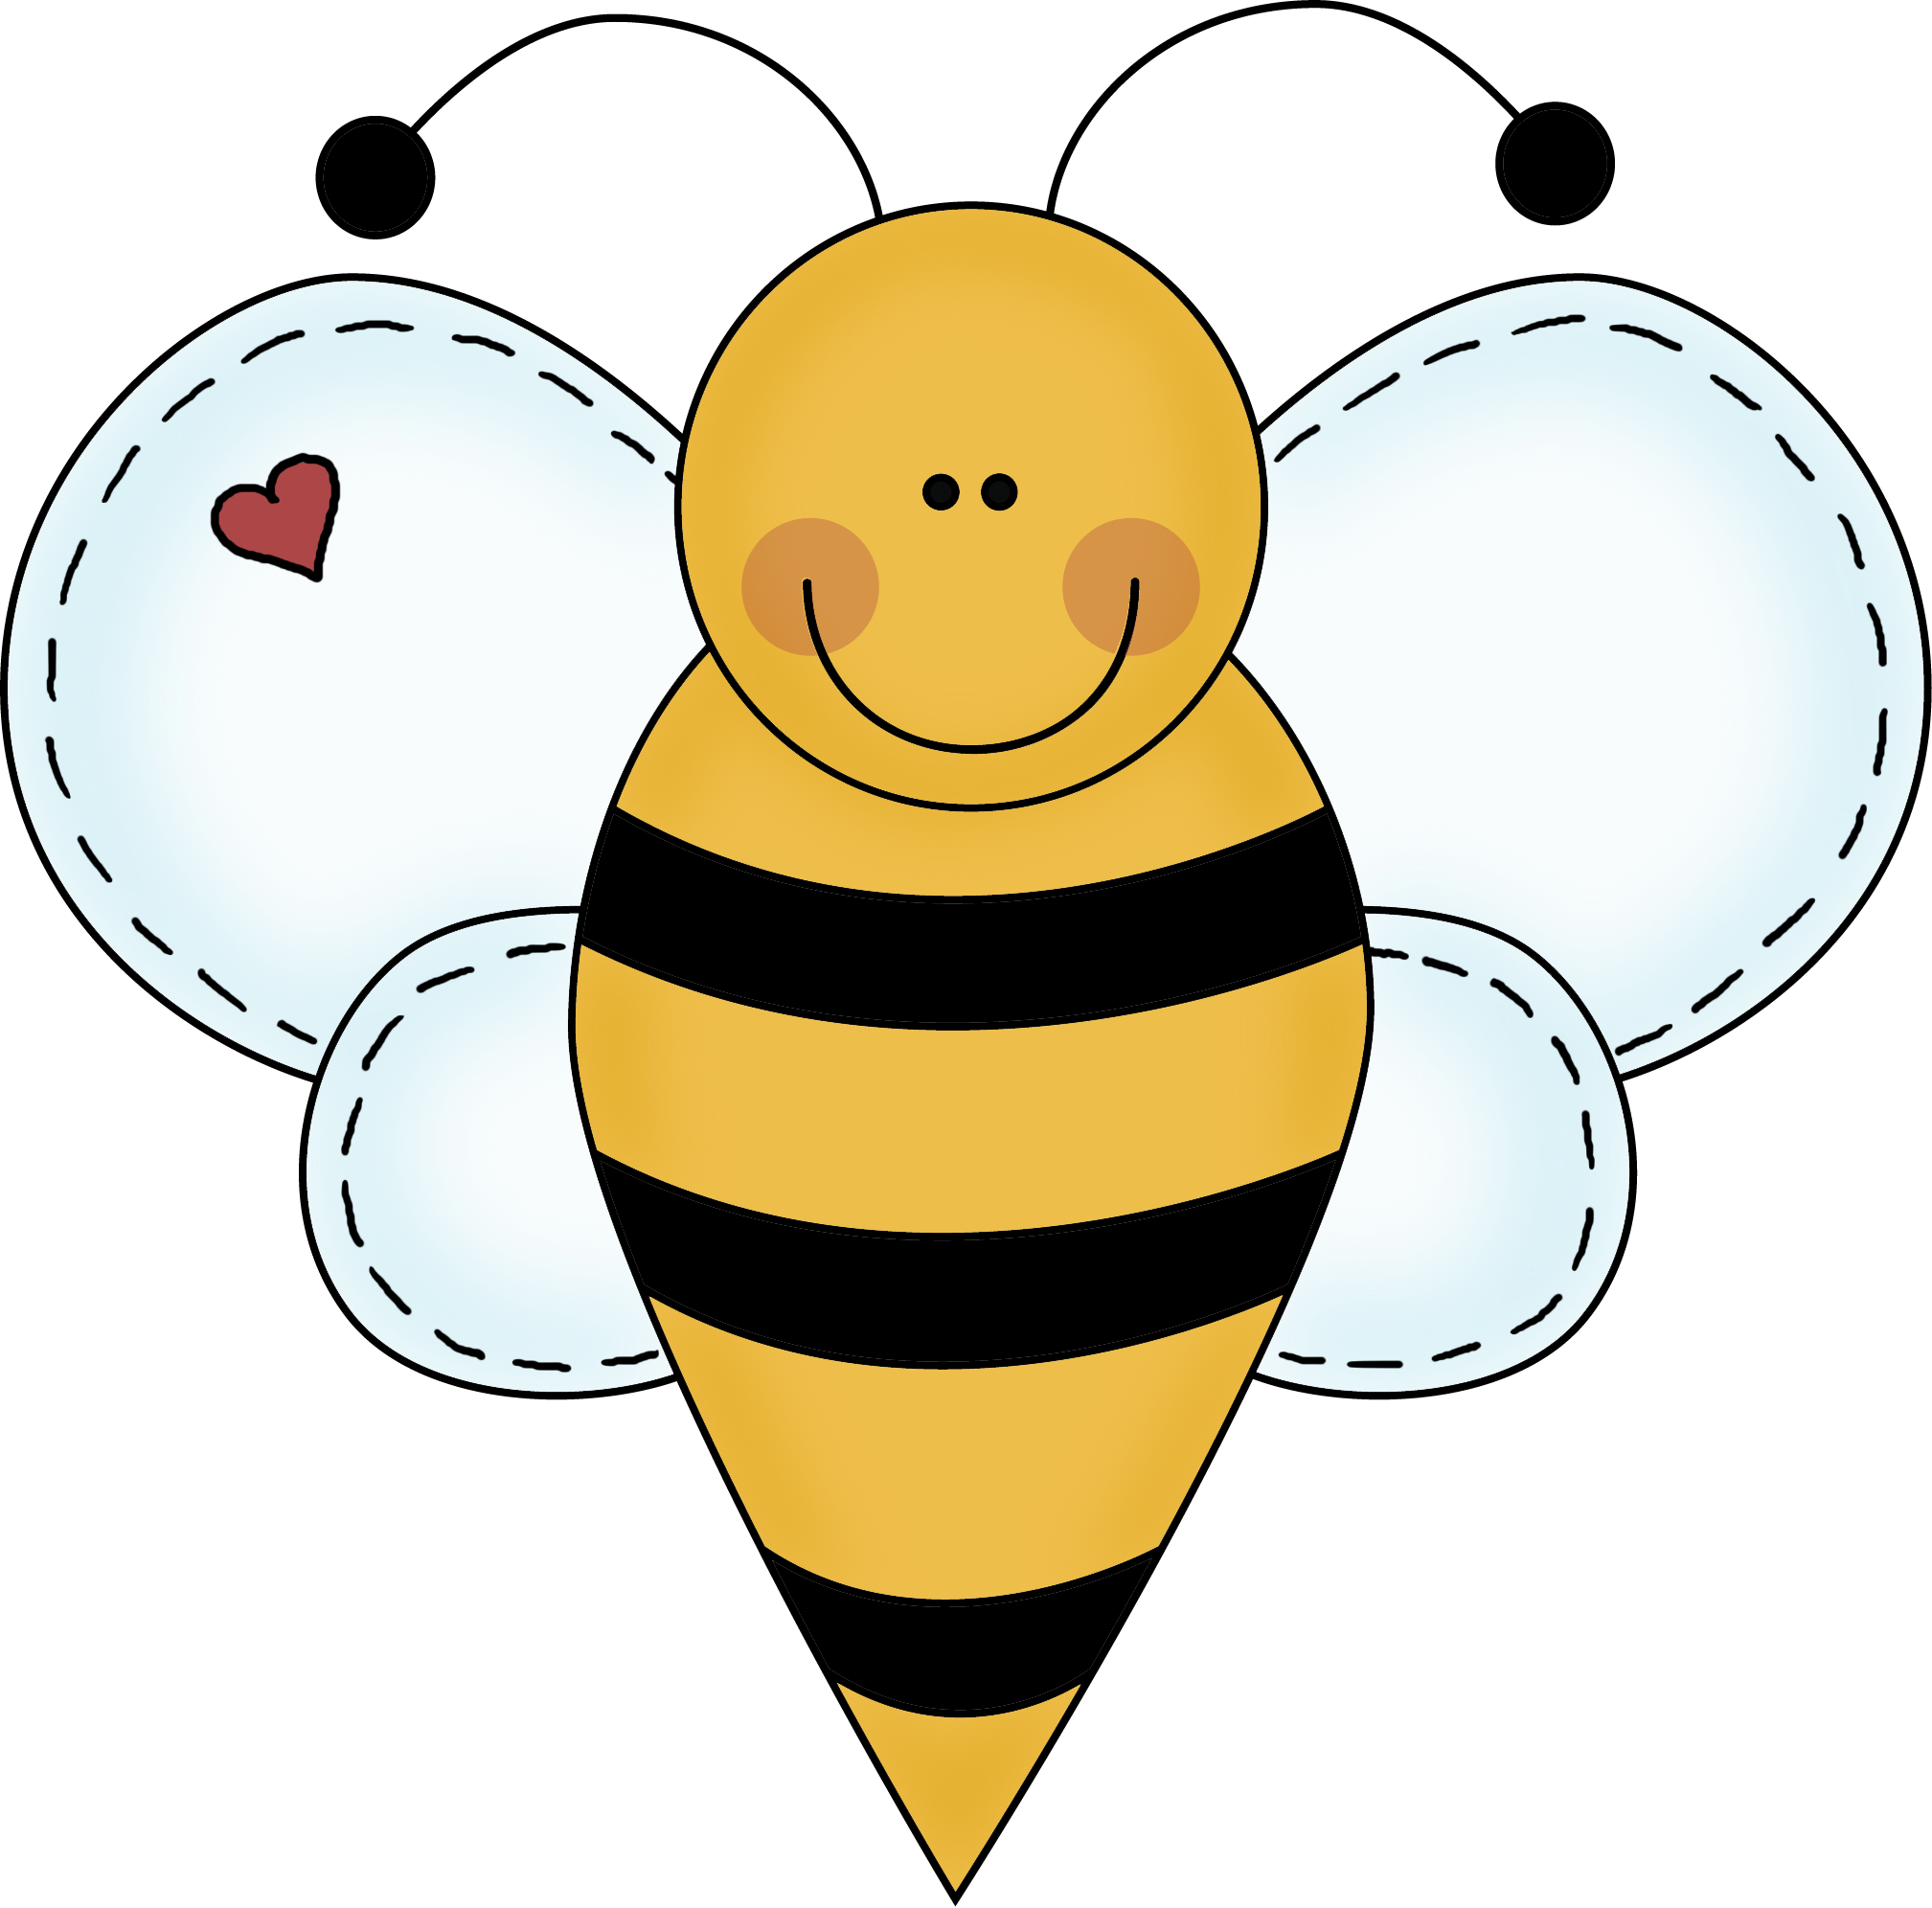 2017x1992 Spelling Bee Clipart Black And White Clipart Panda